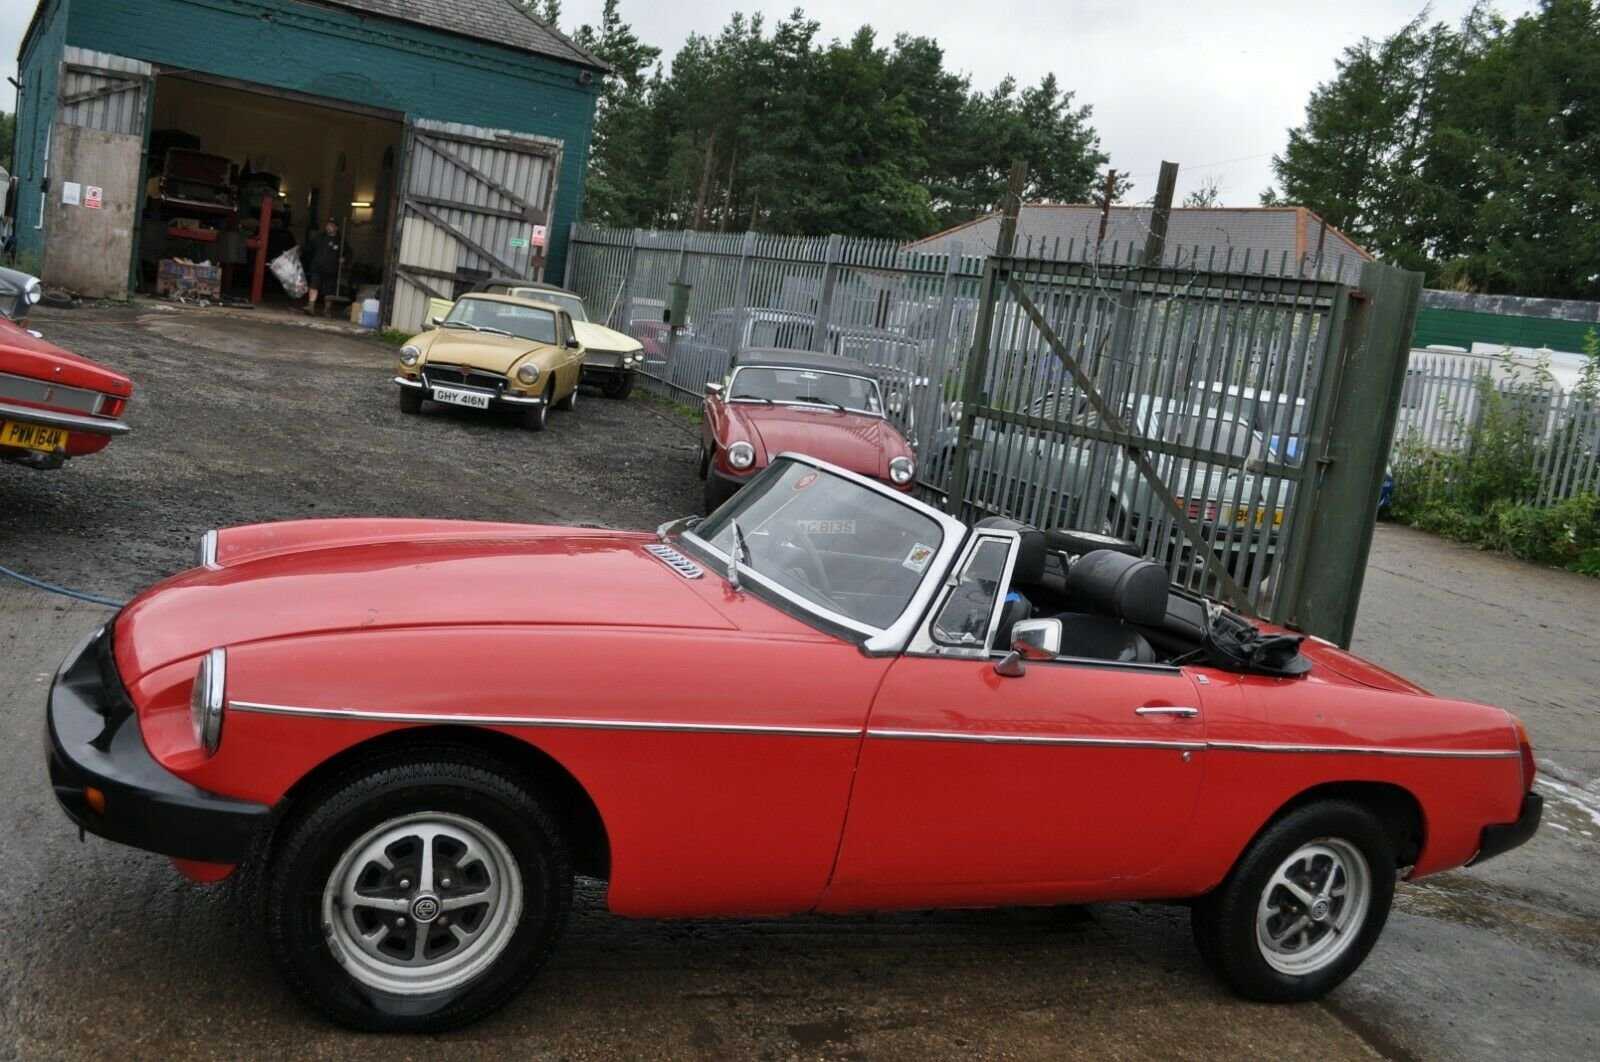 1975 MG MGB ROADSTER IN RED TAX EXEMPT GOOD SOLID CLASSIC CA For Sale (picture 1 of 6)